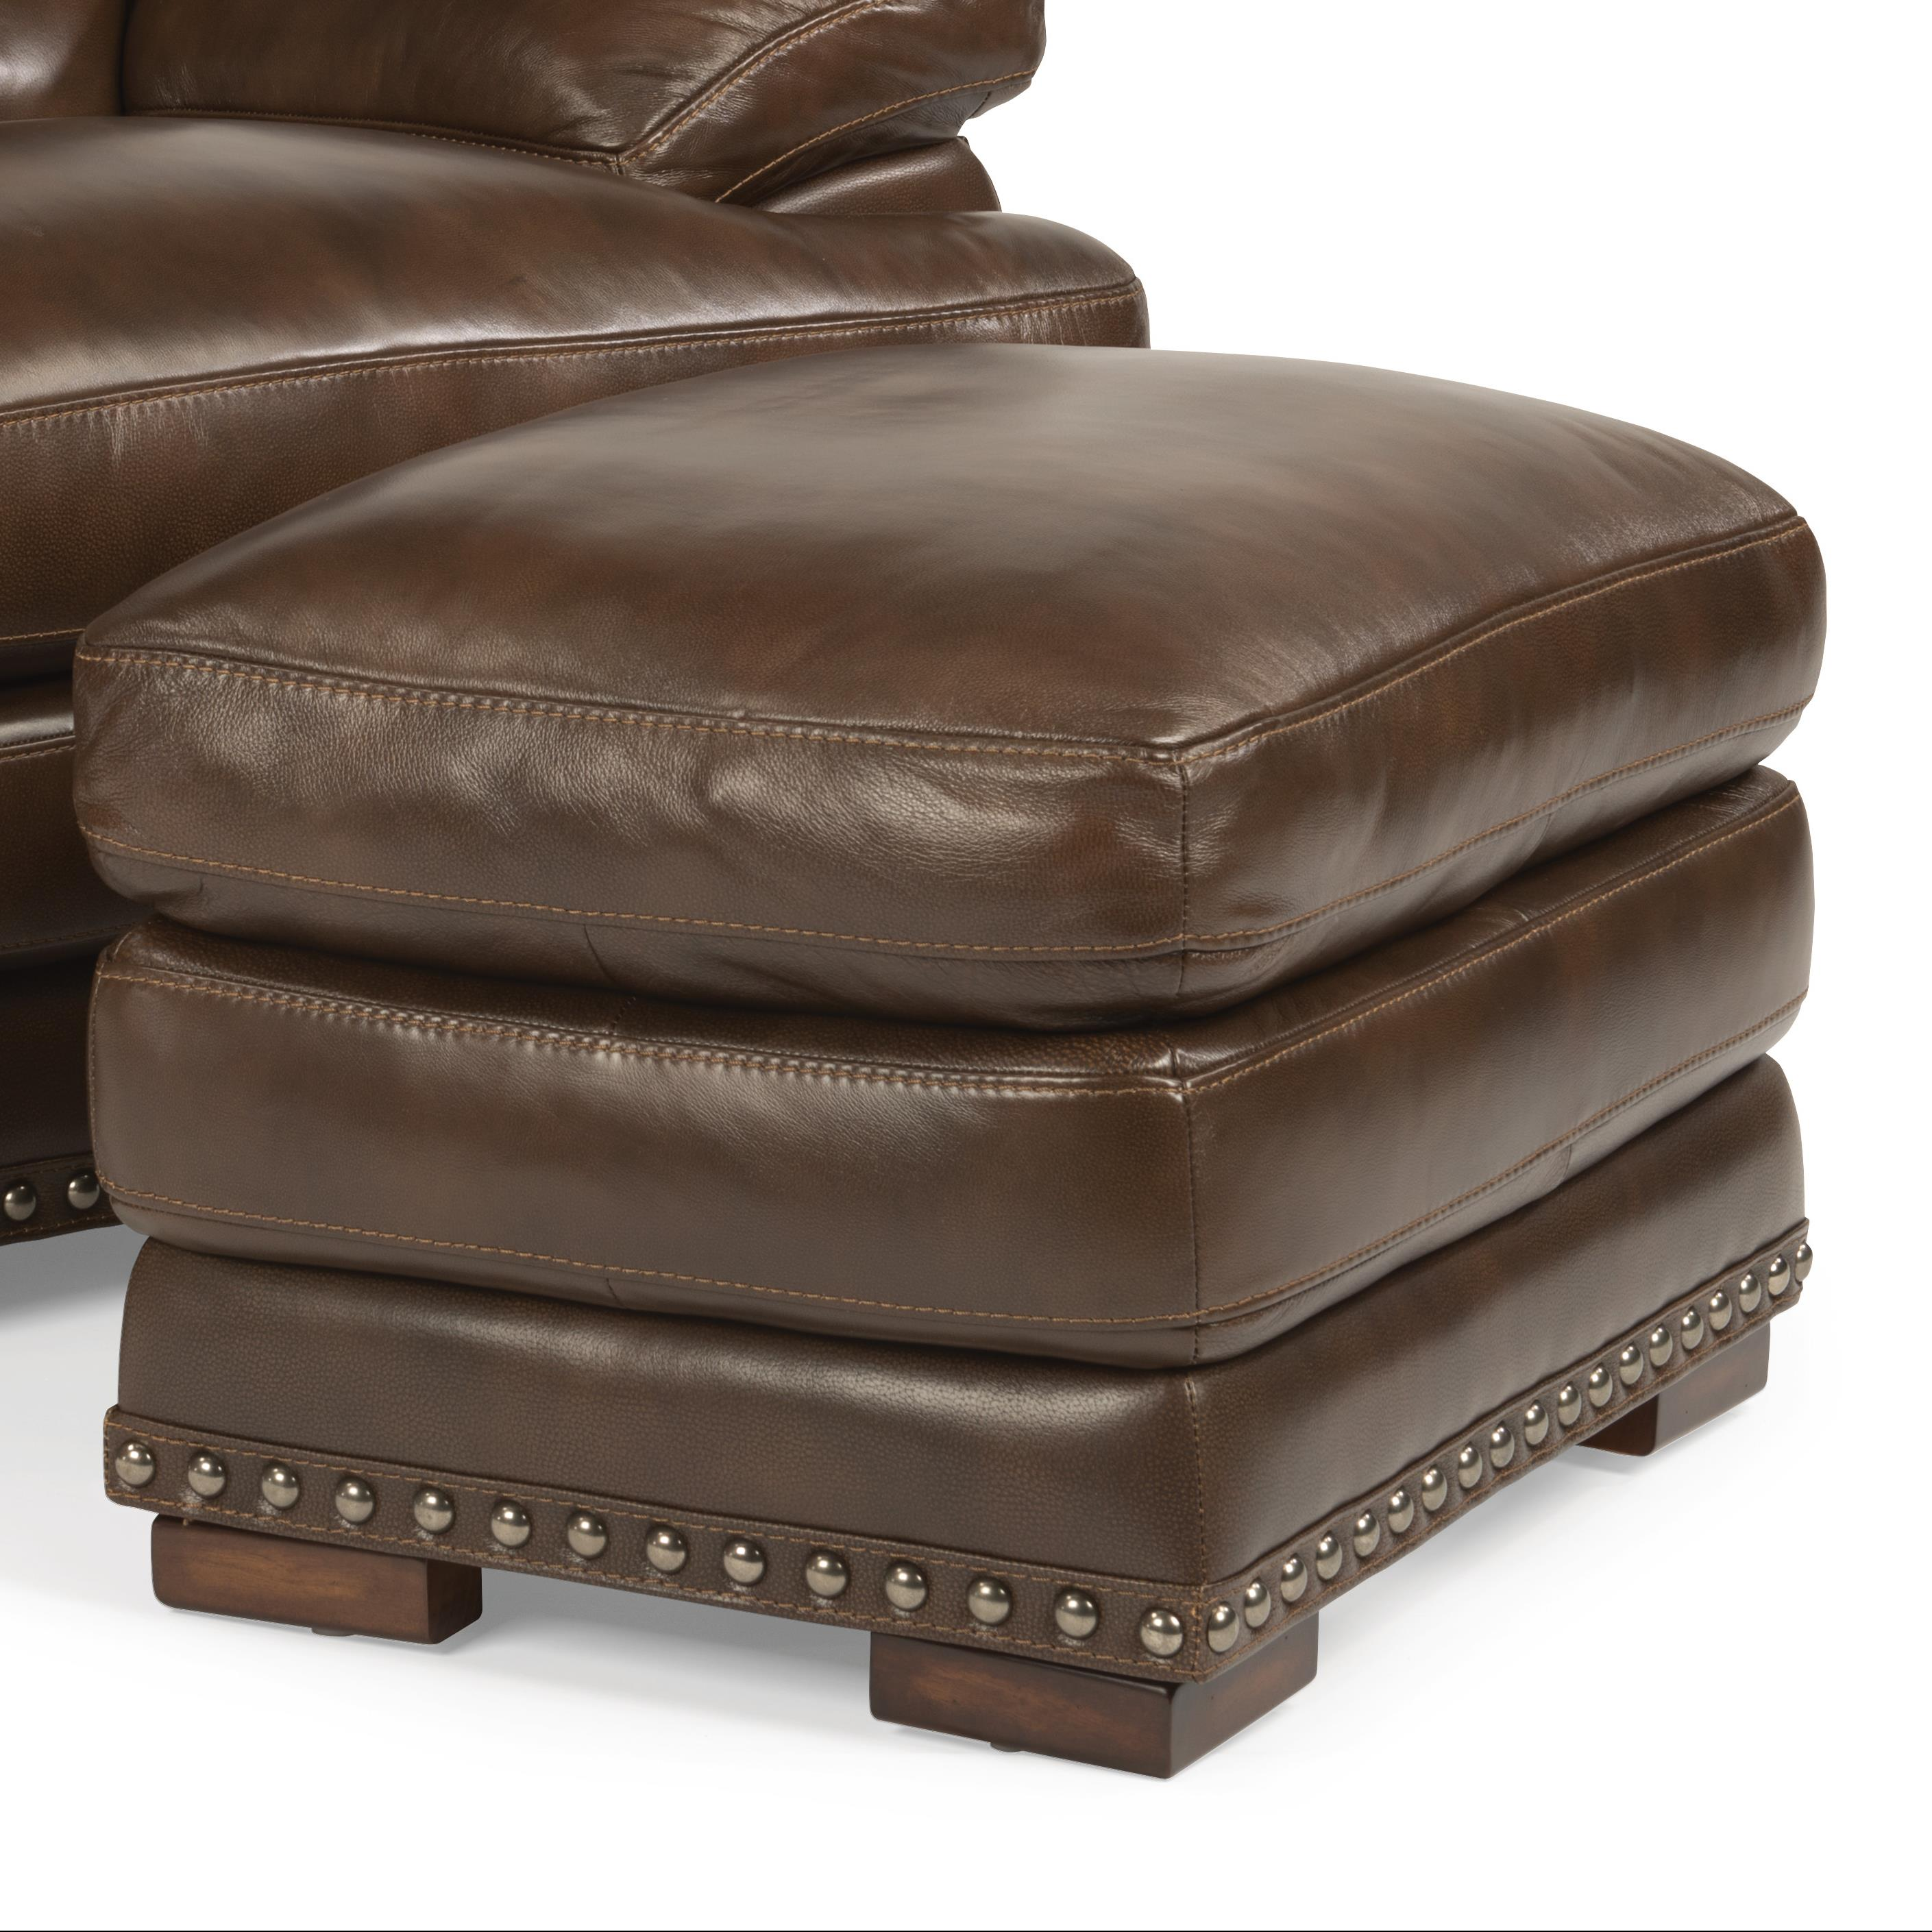 Flexsteel Latitudes - Dylan Leather Ottoman w/ Nailheads - Item Number: 1627-08-908-70